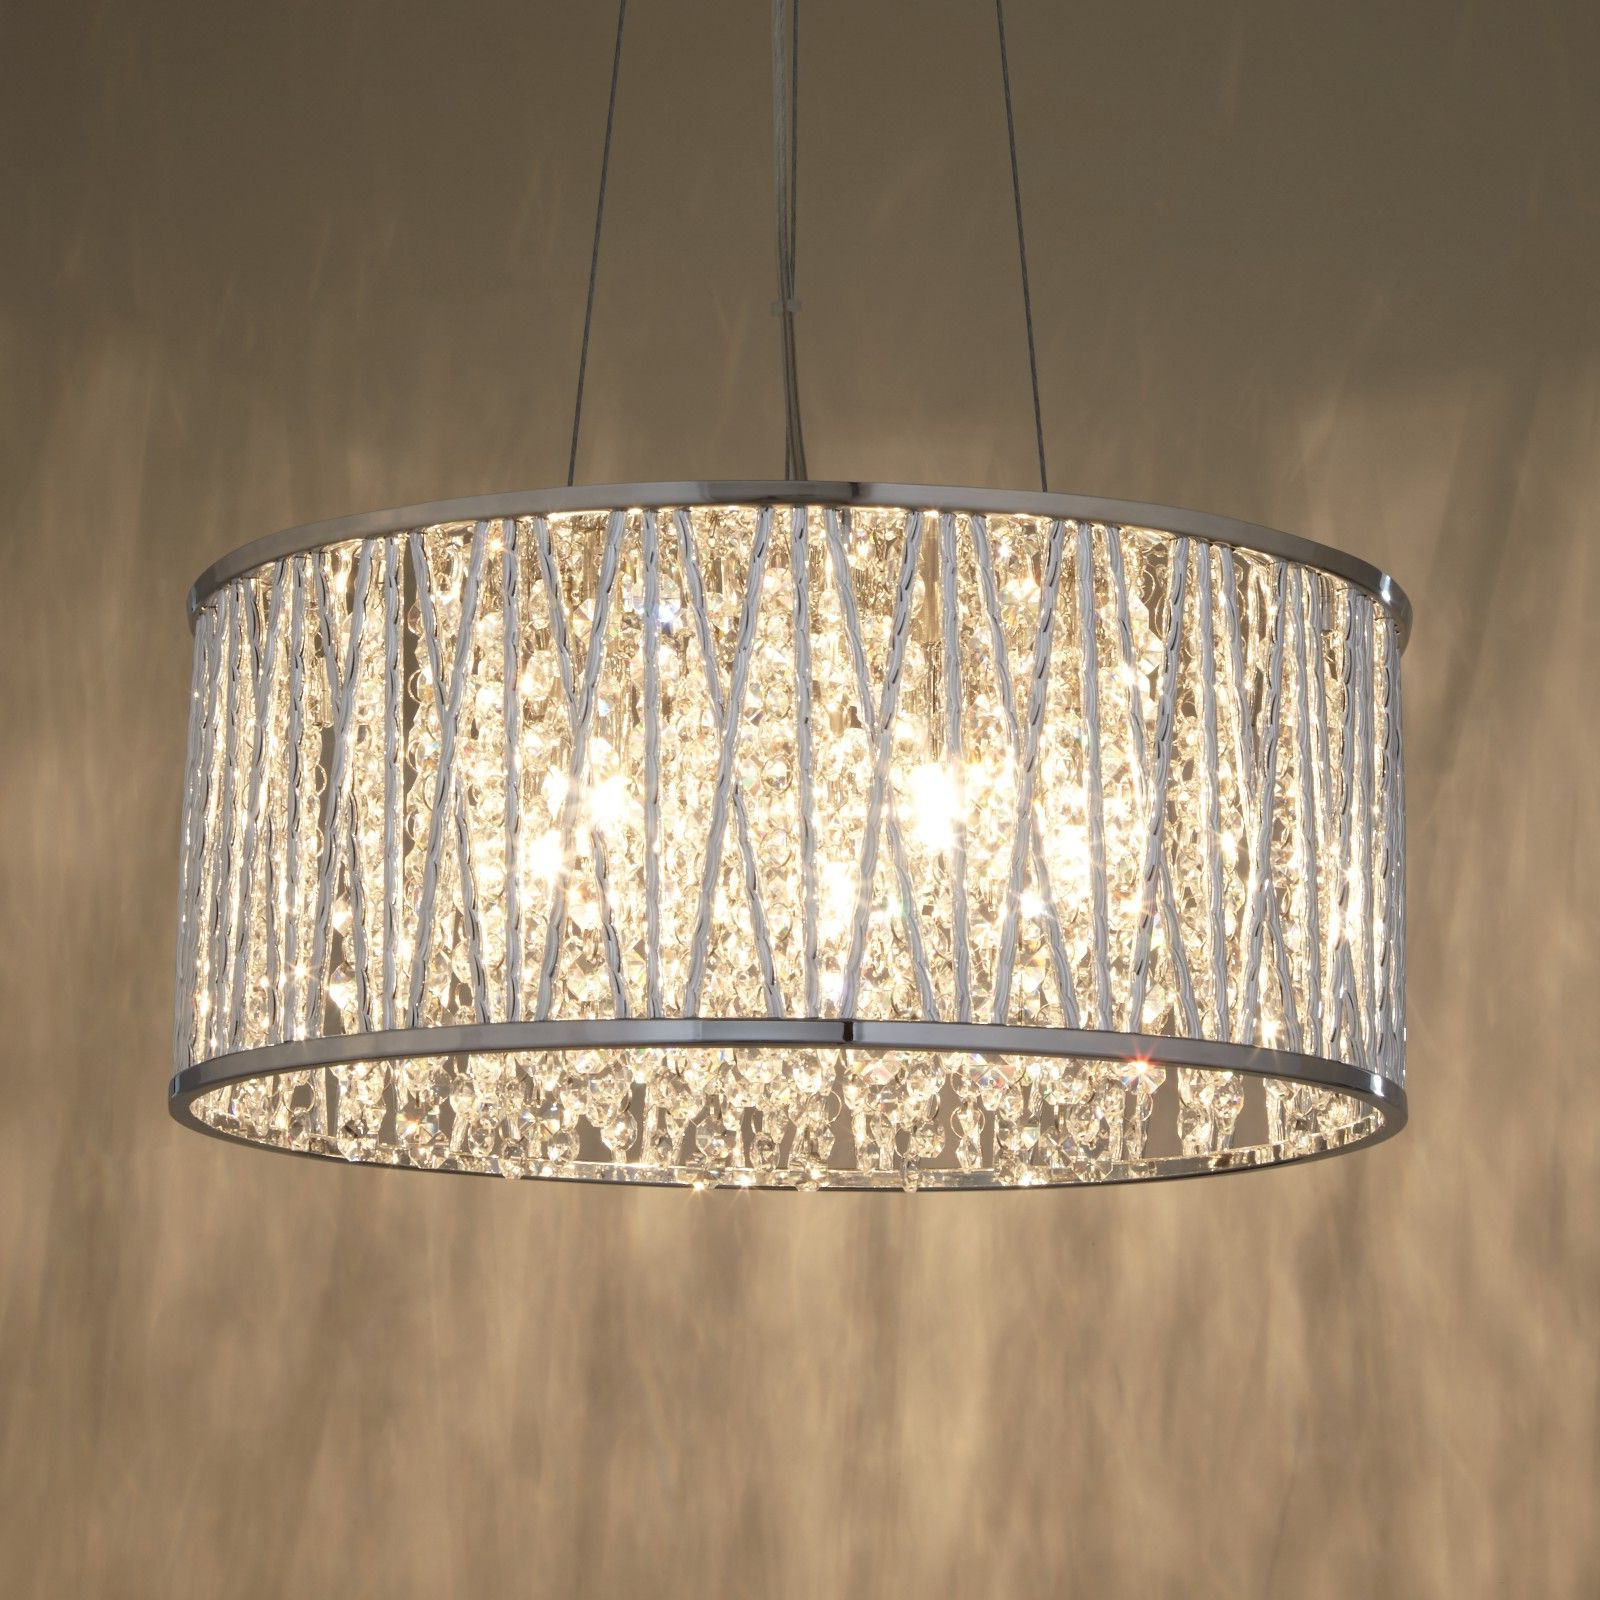 Current Von 4 Light Crystal Chandeliers Intended For John Lewis & Partners Emilia Large Crystal Ceiling Light (View 6 of 25)